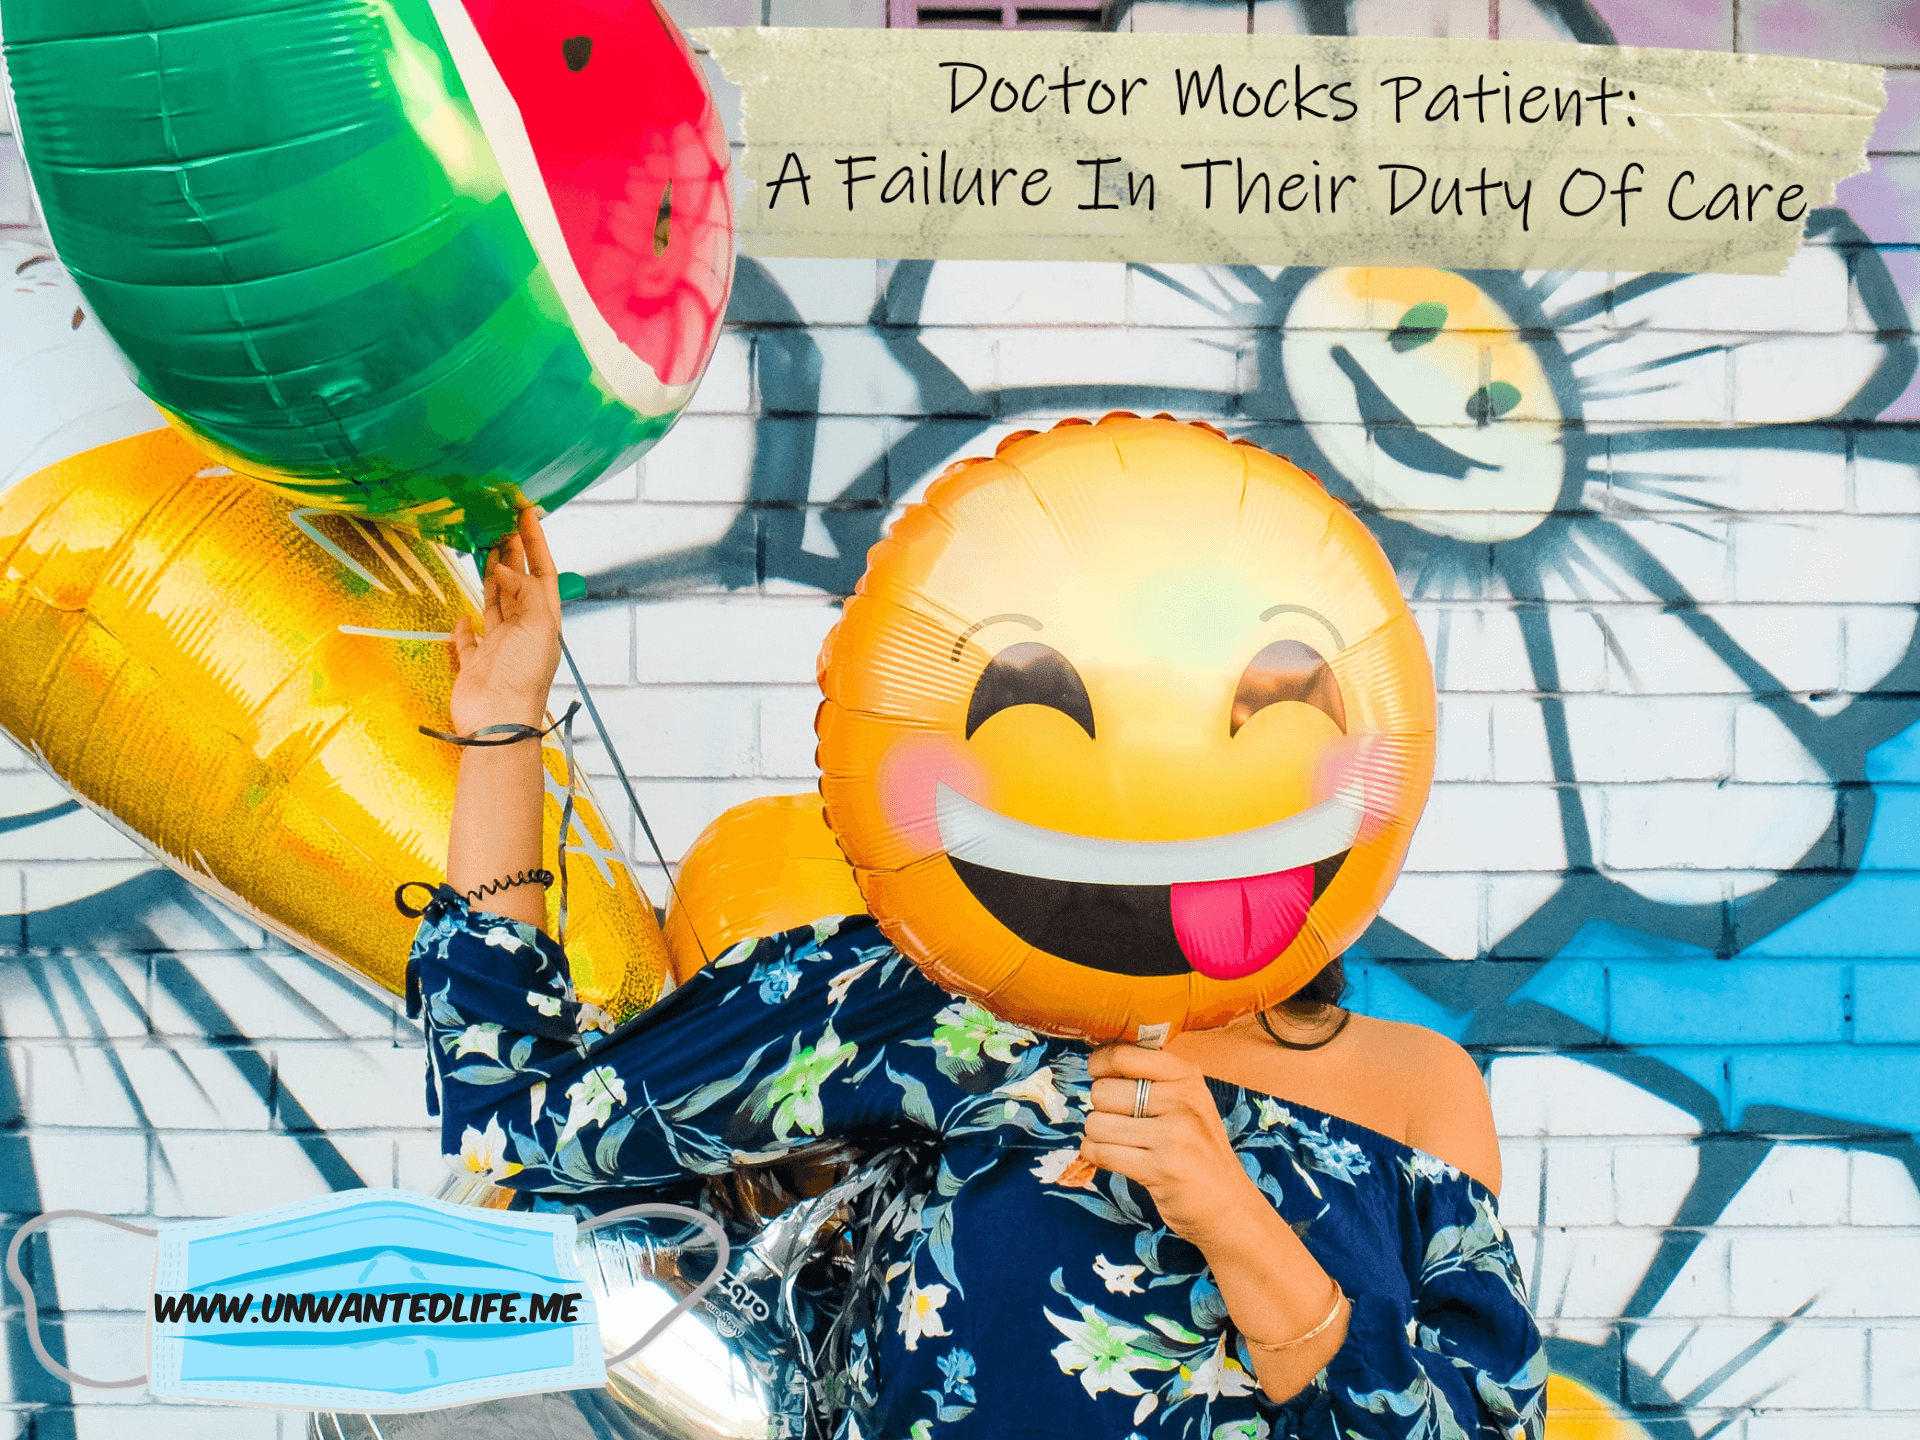 A woman standing in front of a wall covered in graffiti hiding her face behind an emoji balloon with the title of the article in the top right corner - Doctor Mocks Patient: A Failure In Their Duty Of Care